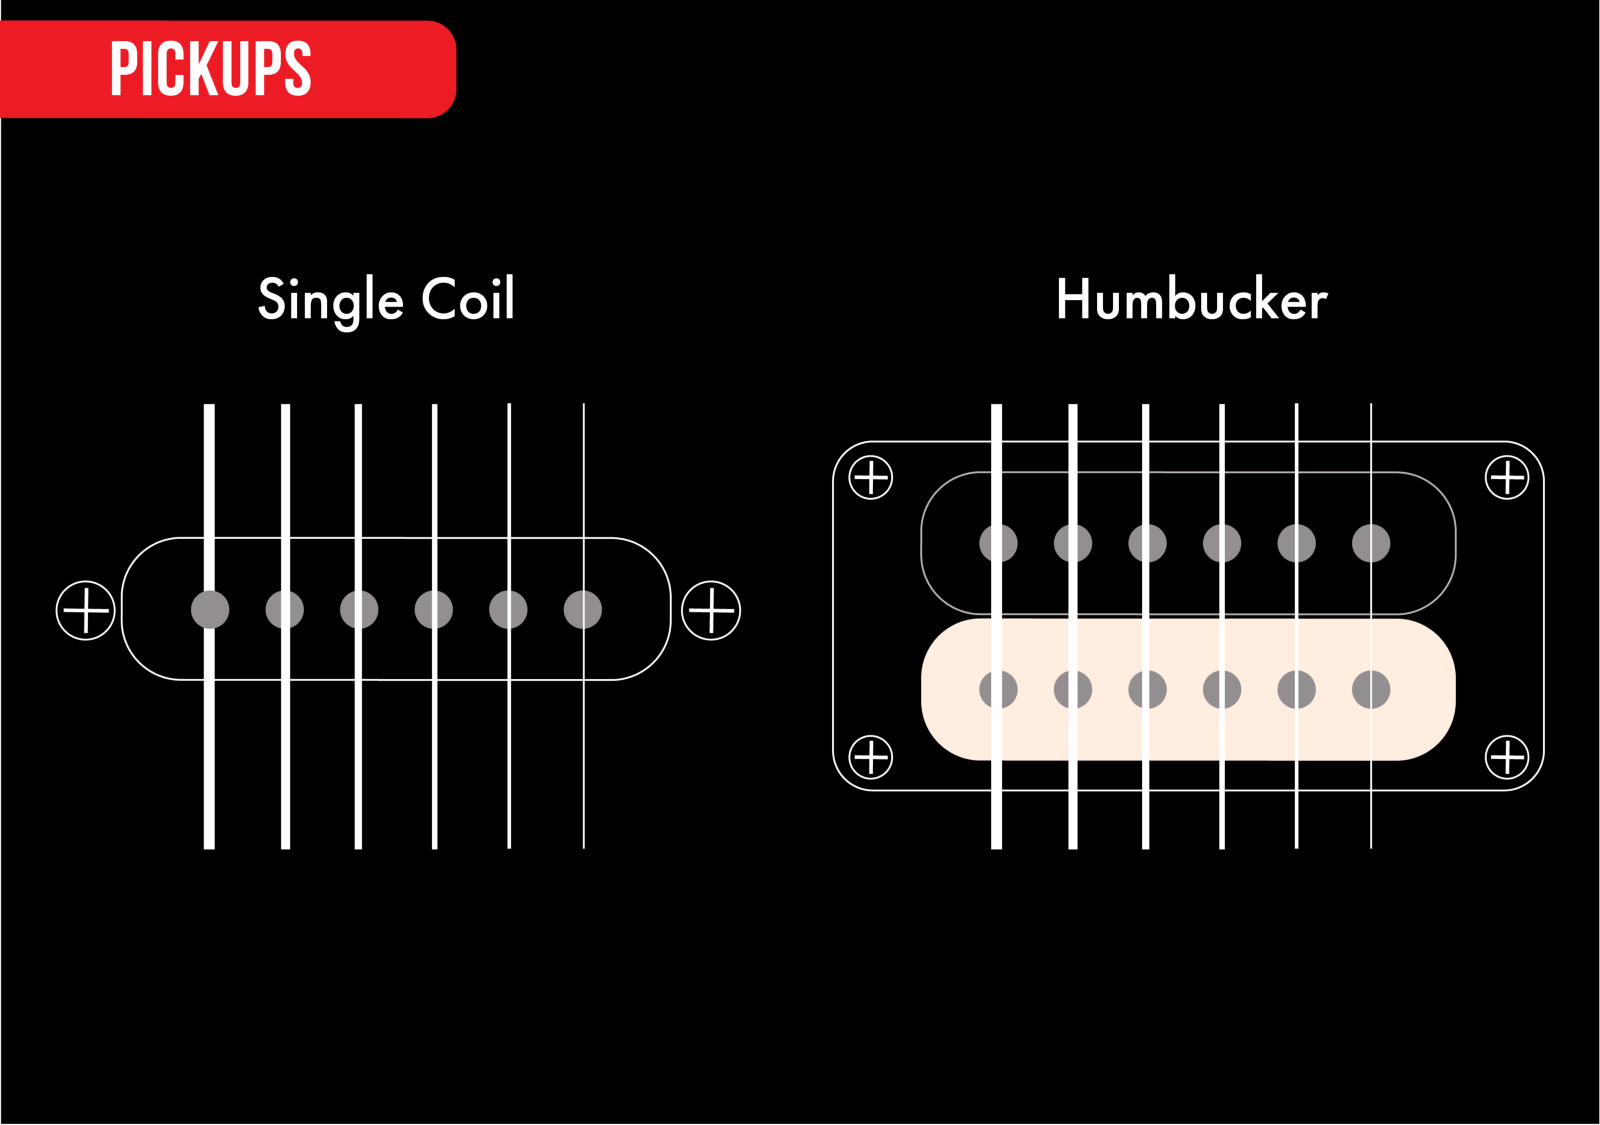 hight resolution of pickups are the electromagnetic devices that collect the sound of the strings and convert that into an electronic signal the two most common types of bass